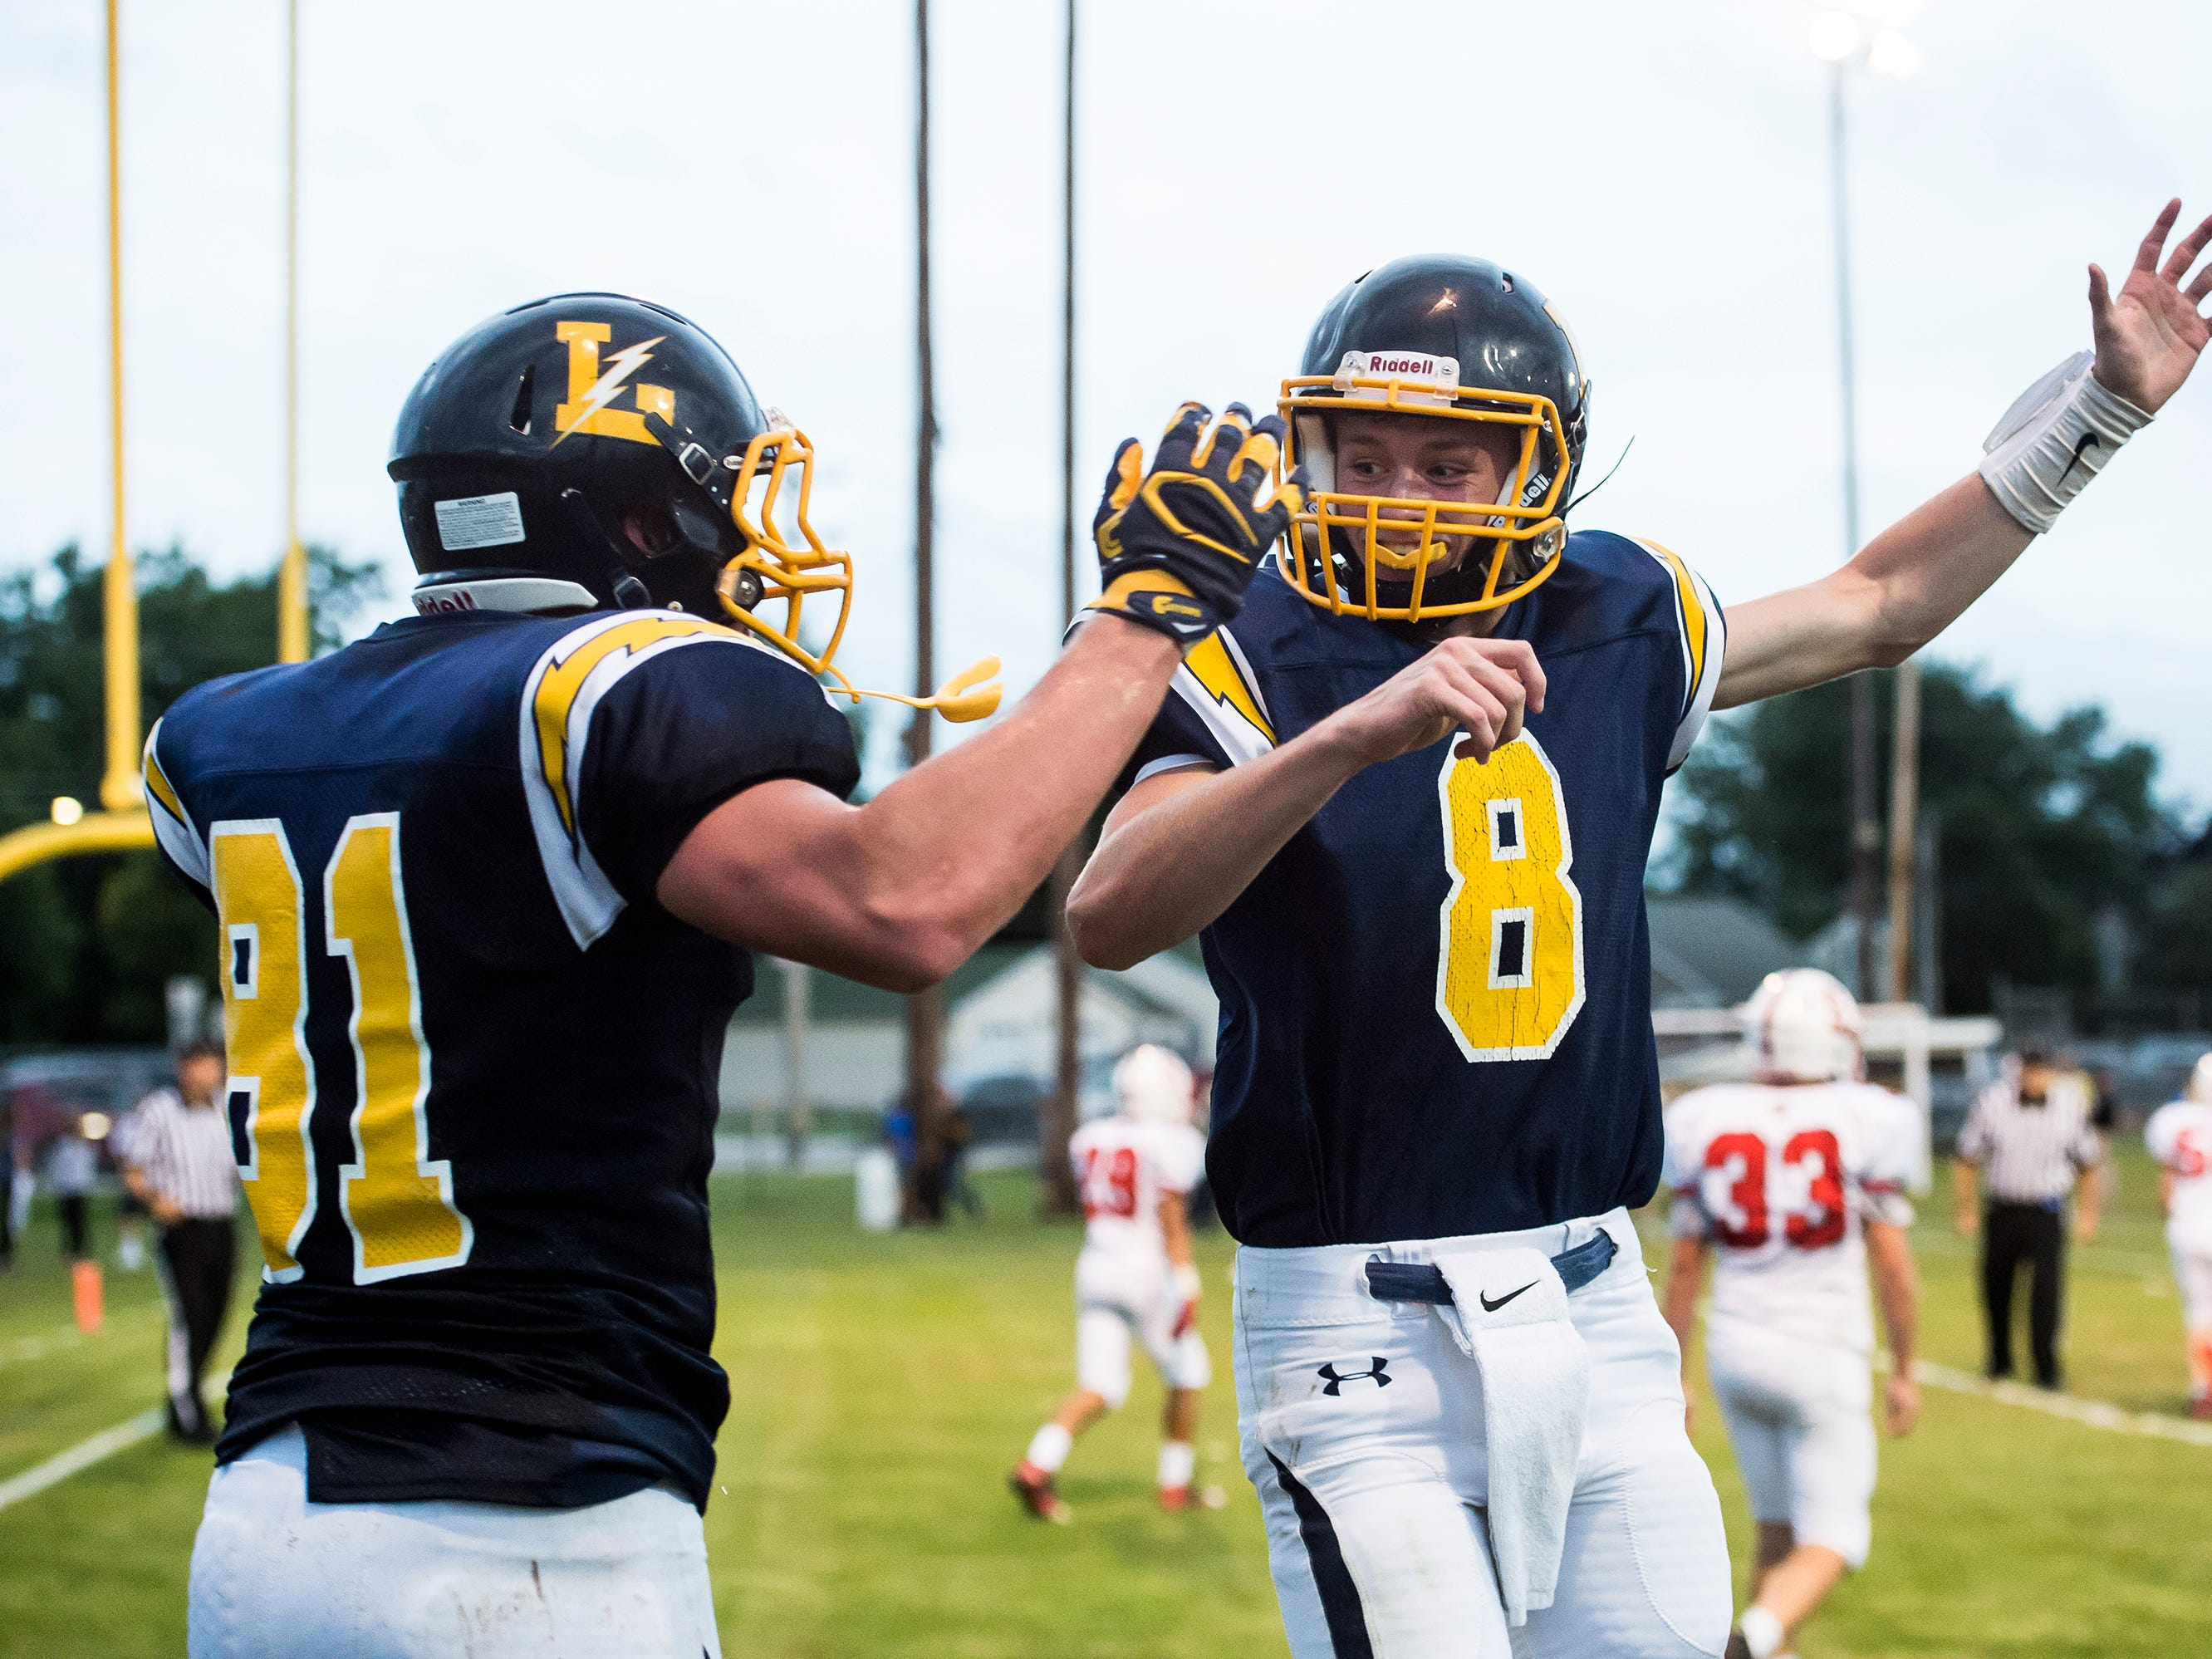 Littlestown quarterback Jakob Lane (8) celebrates with tight end Brady McClintock after the pair connected for a touchdown against Susquehannock on Friday, August 31, 2018. The Bolts beat the Warriors 29-14.